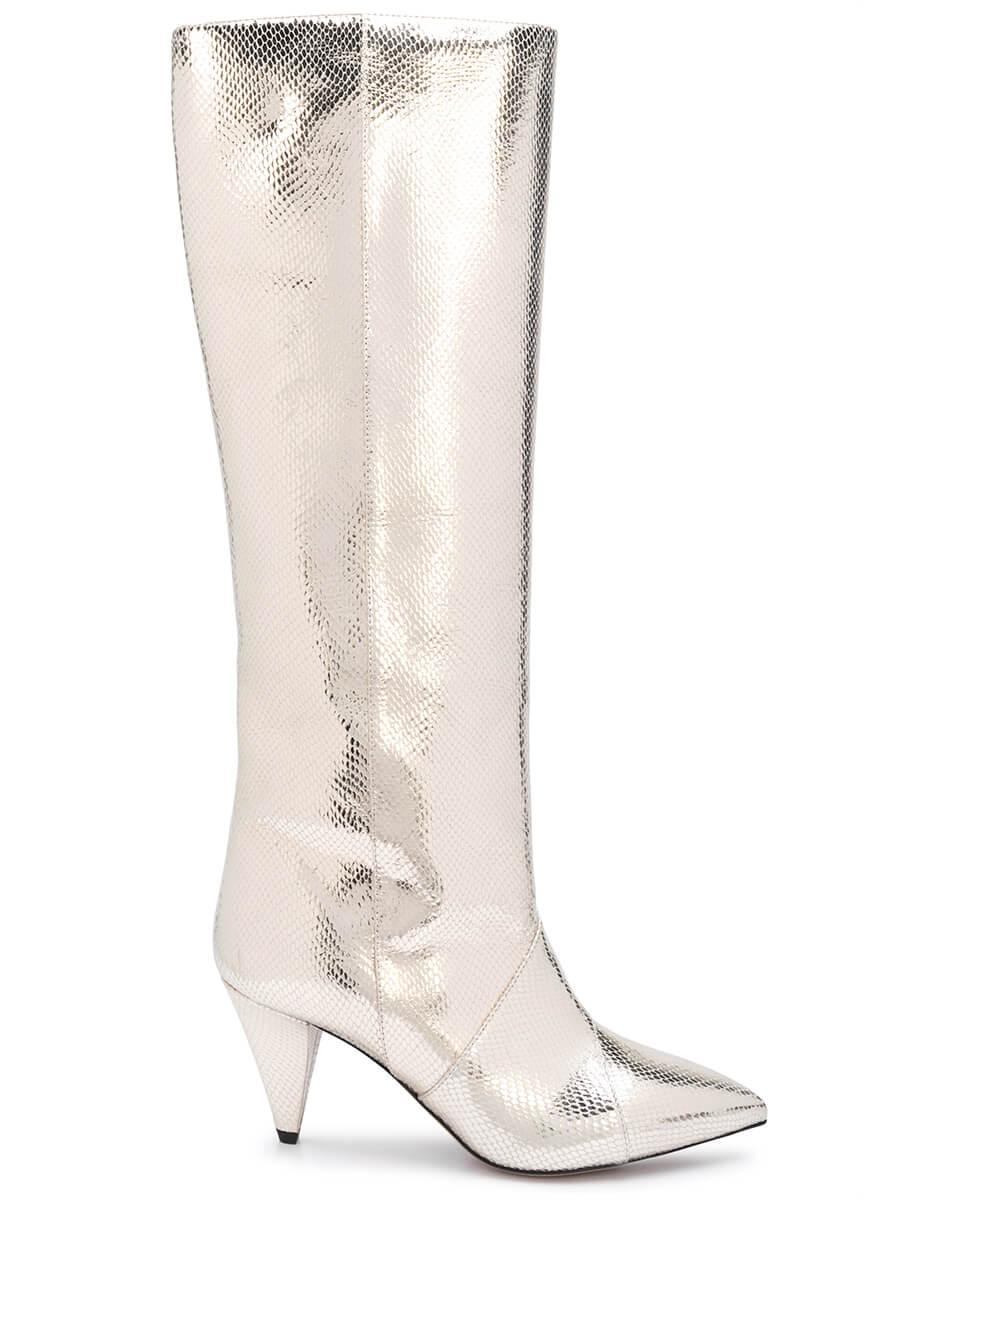 Metallic Tall High Heel Boot